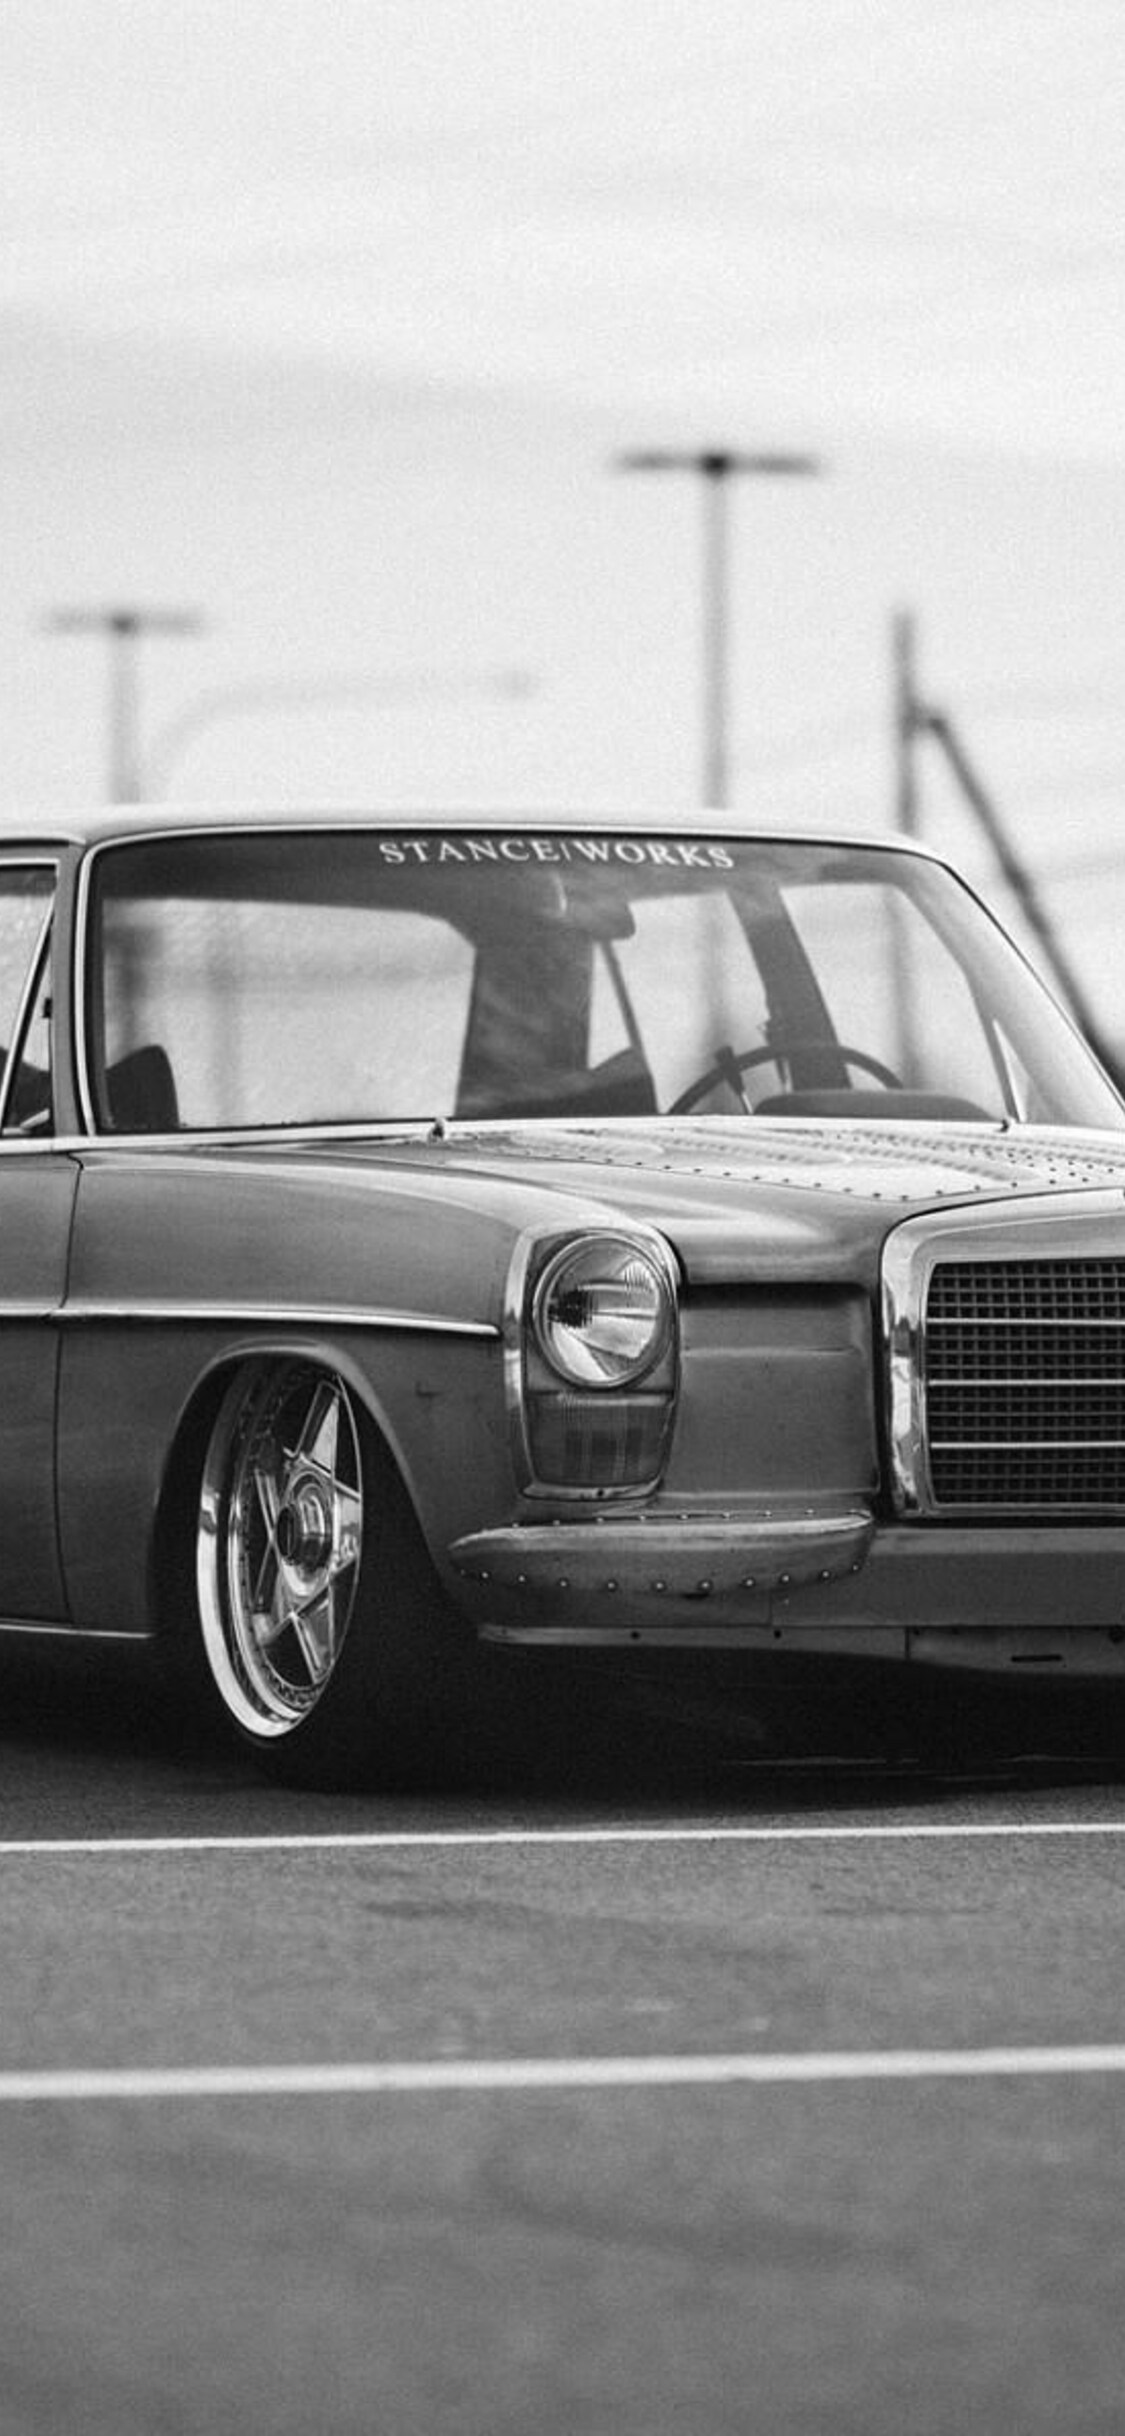 1125x2436 Mercedes Benz Stance Works Iphone Xs Iphone 10